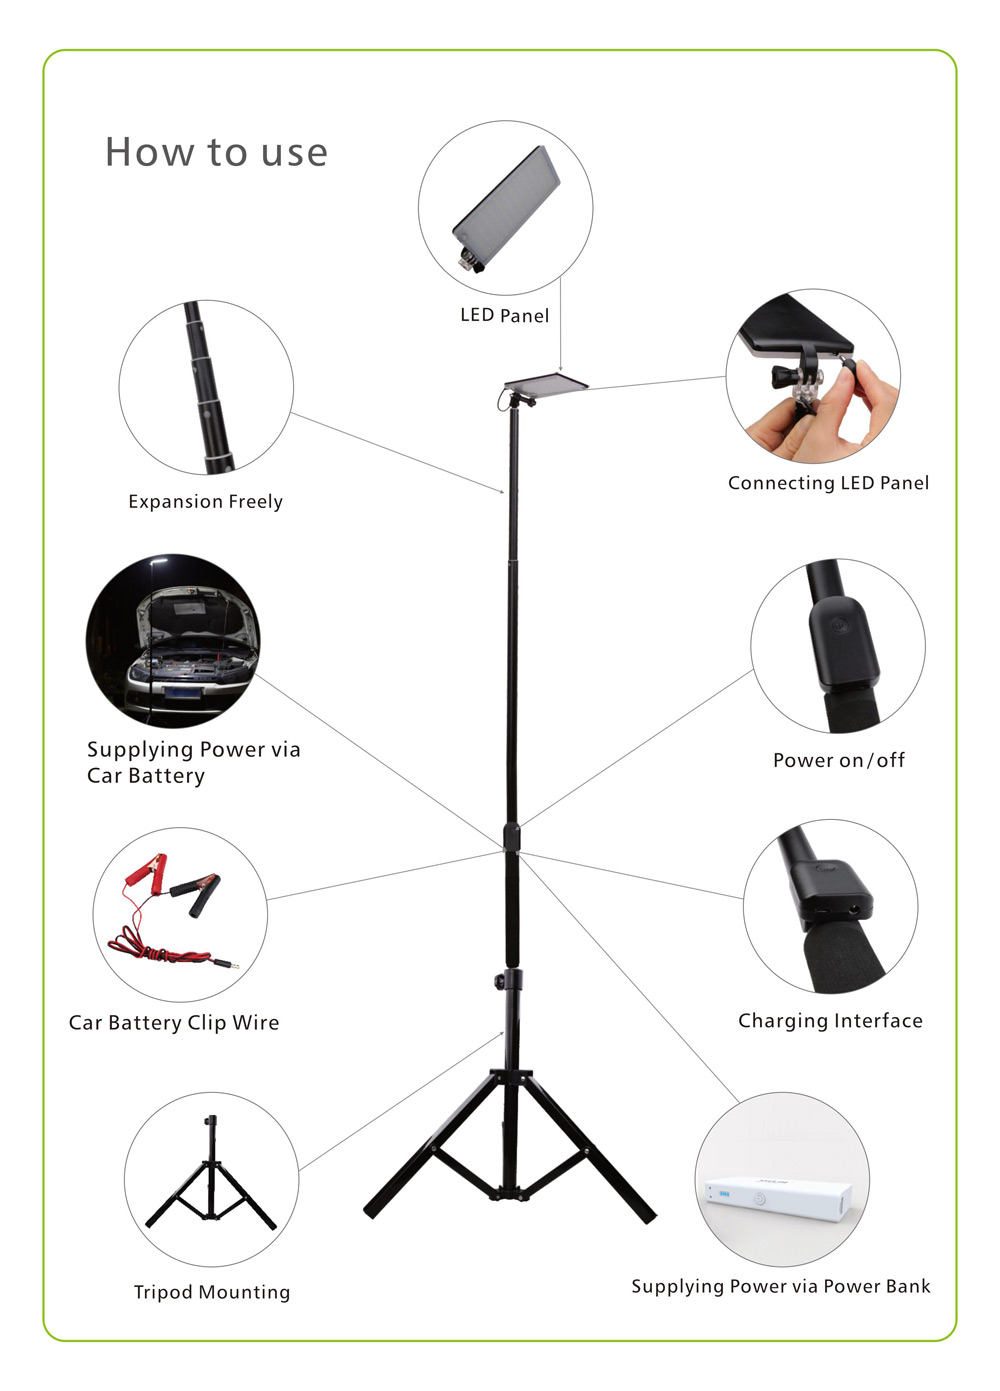 Portable Usb Charging 84 Leds Telescopic Rod Camping Light 3586 Auto Control Panel Wiring Diagram Package Contents 1 X Expansion Led Fixing Pin Power Box User Manual In English And Chinese Car Battery Clip Wire